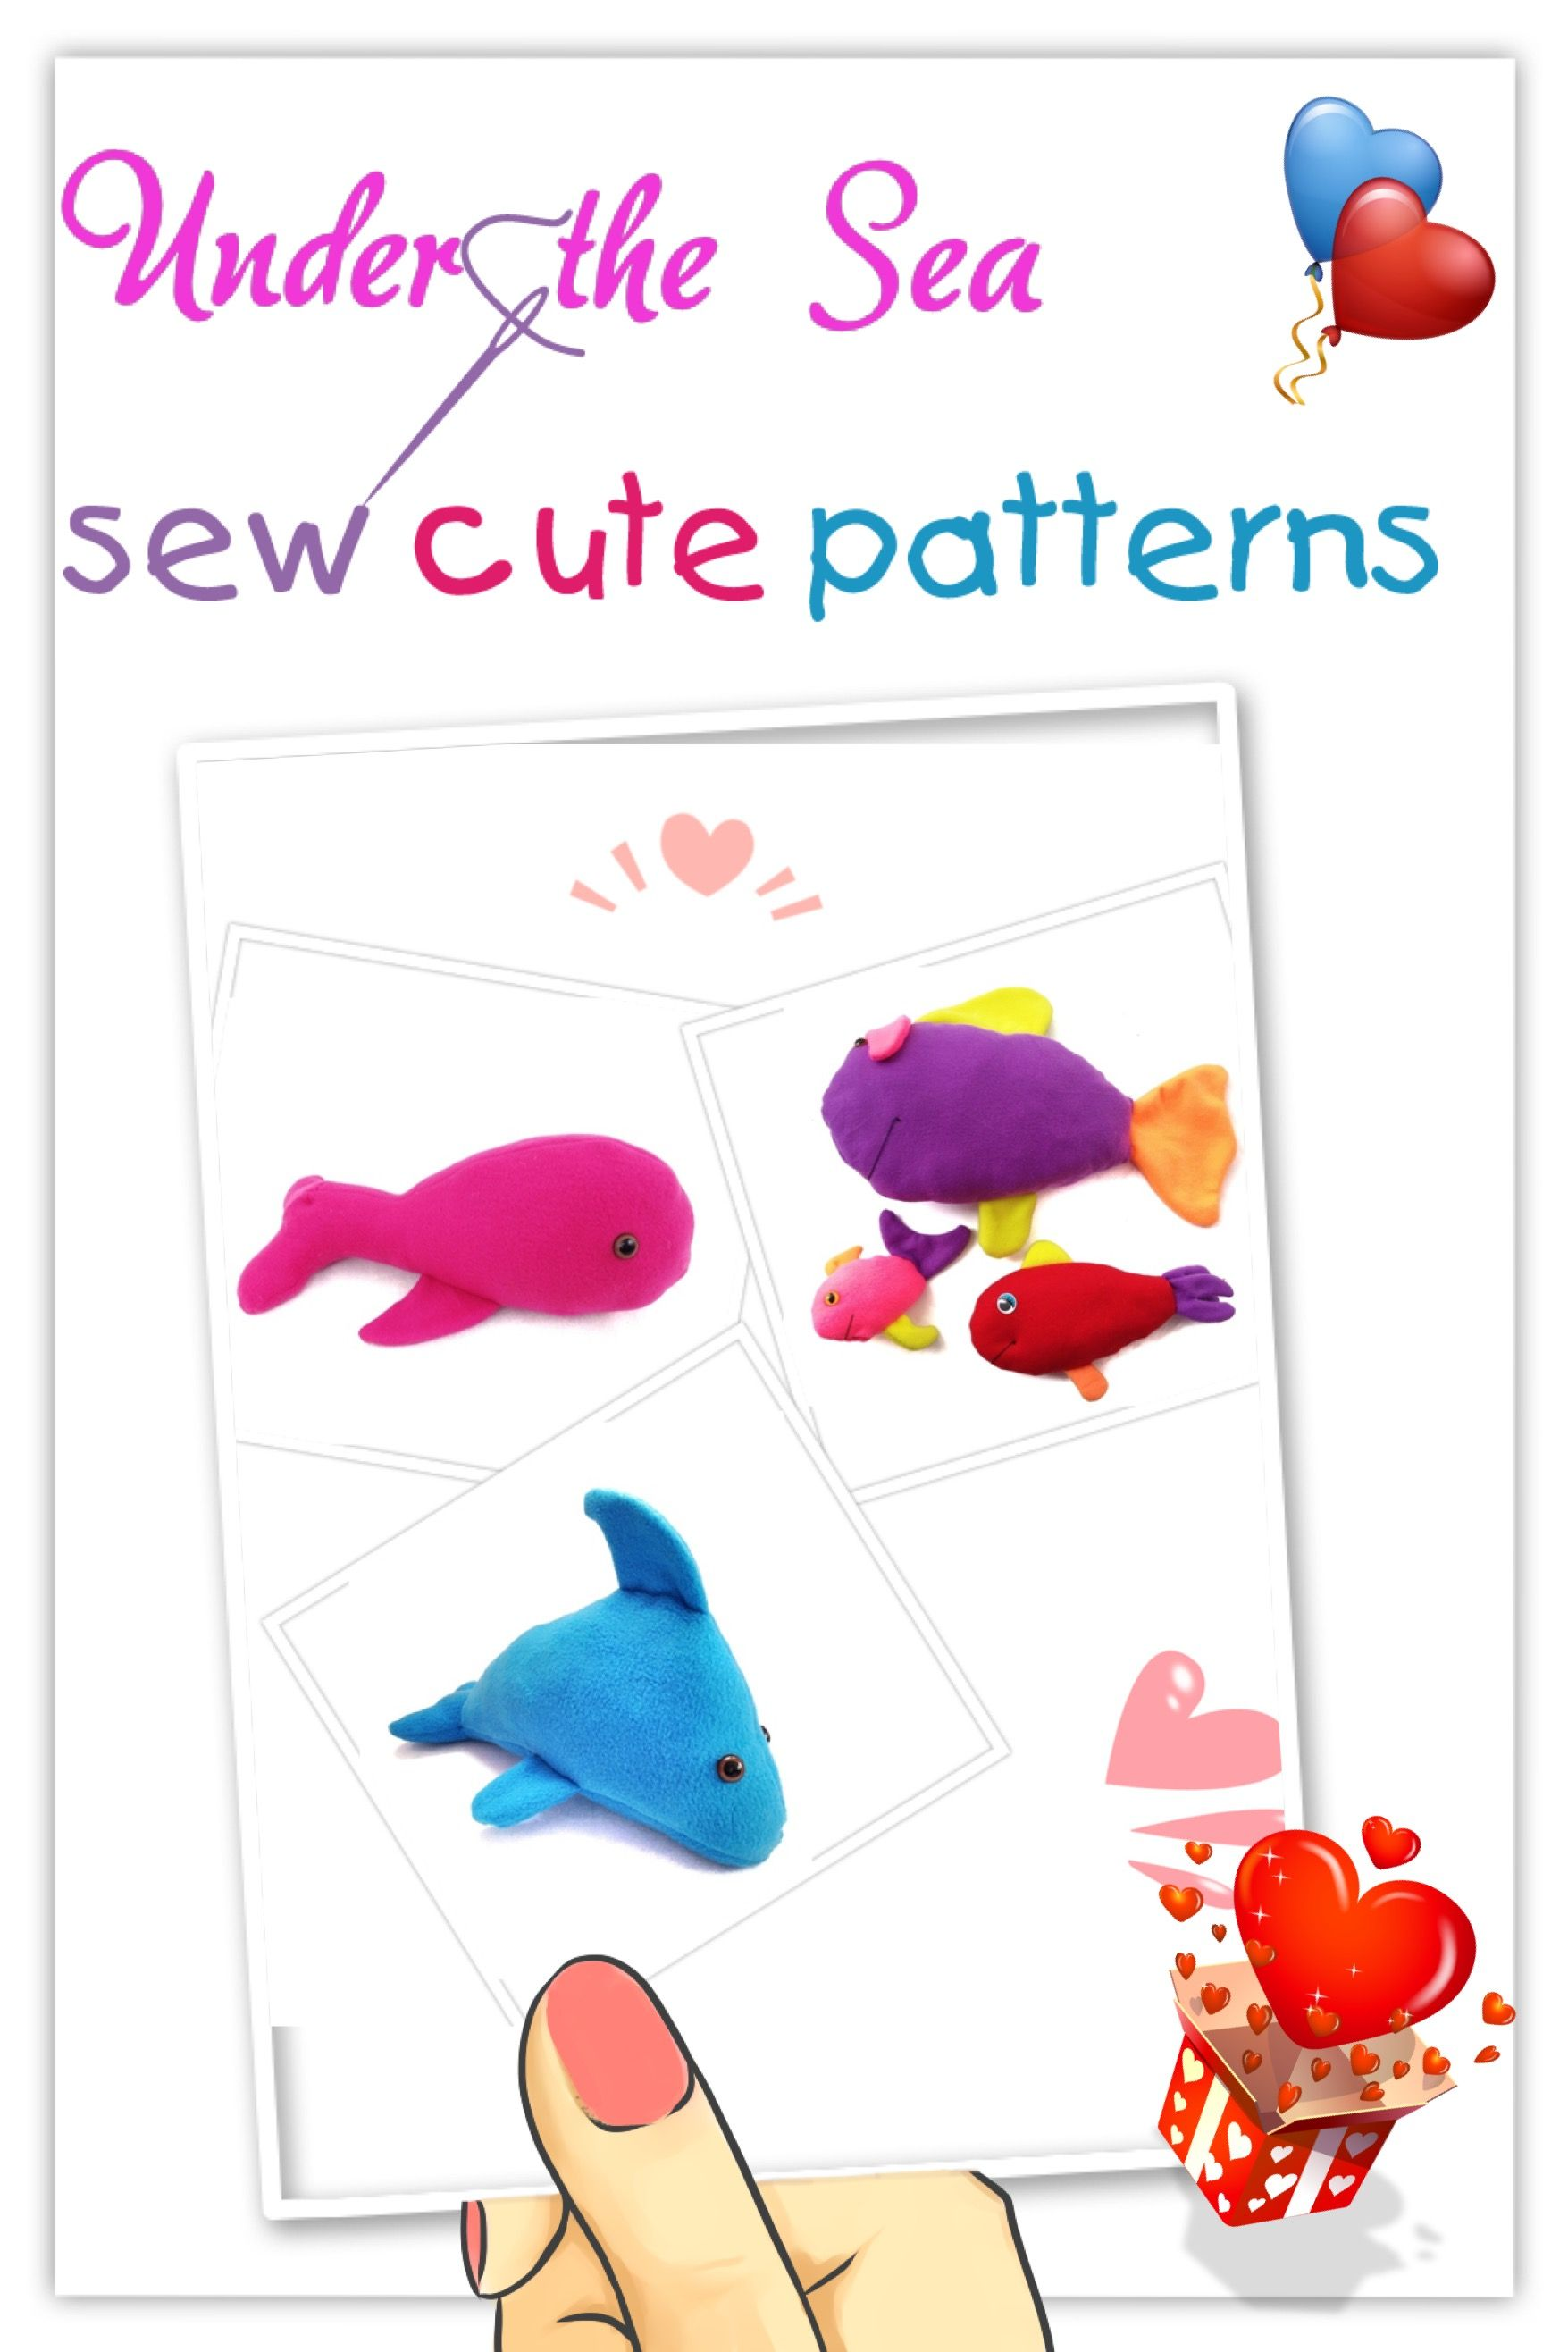 Store | Sew Cute Patterns | Pinterest | Sewing, Pattern and Sewing ...